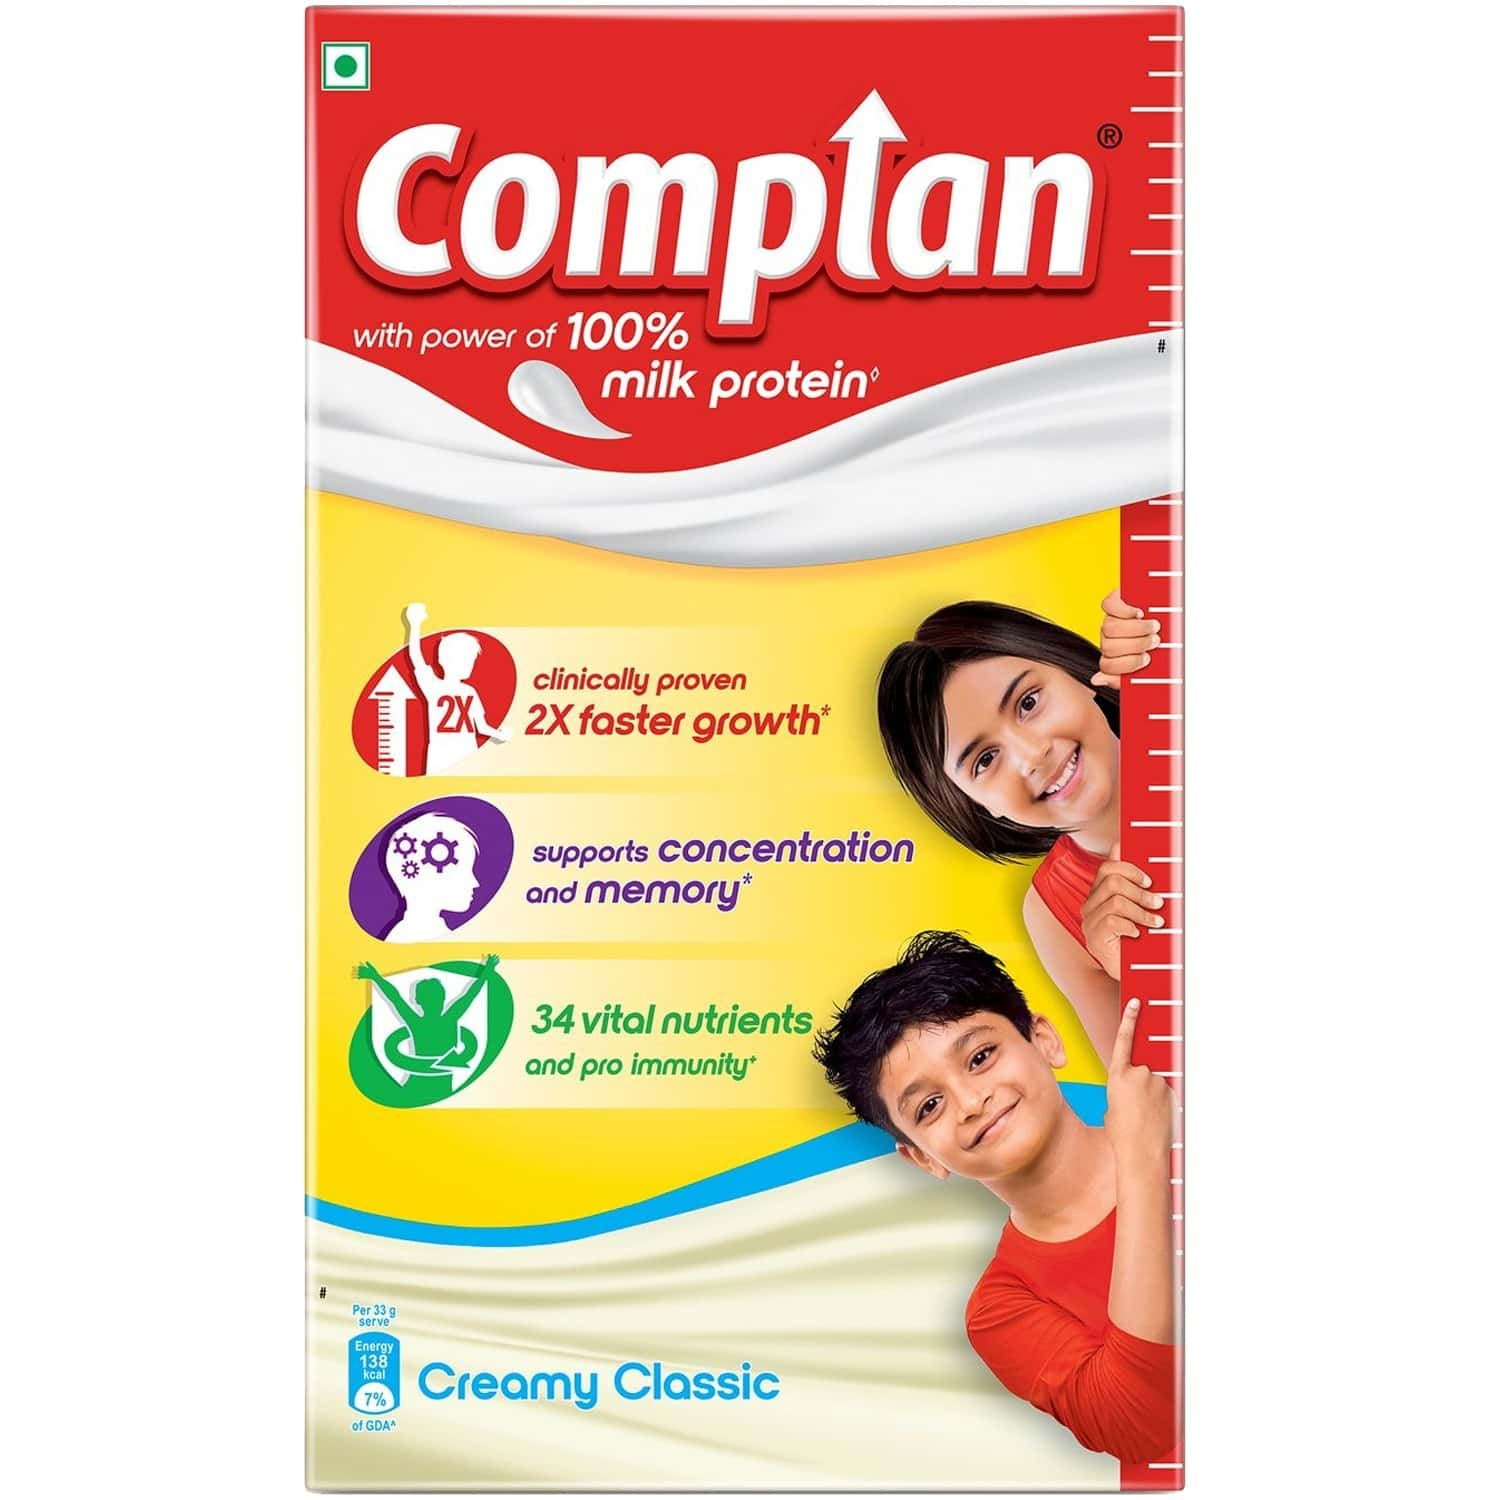 Complan Nutrition And Health Drink Creamy Classic 1kg, Refill